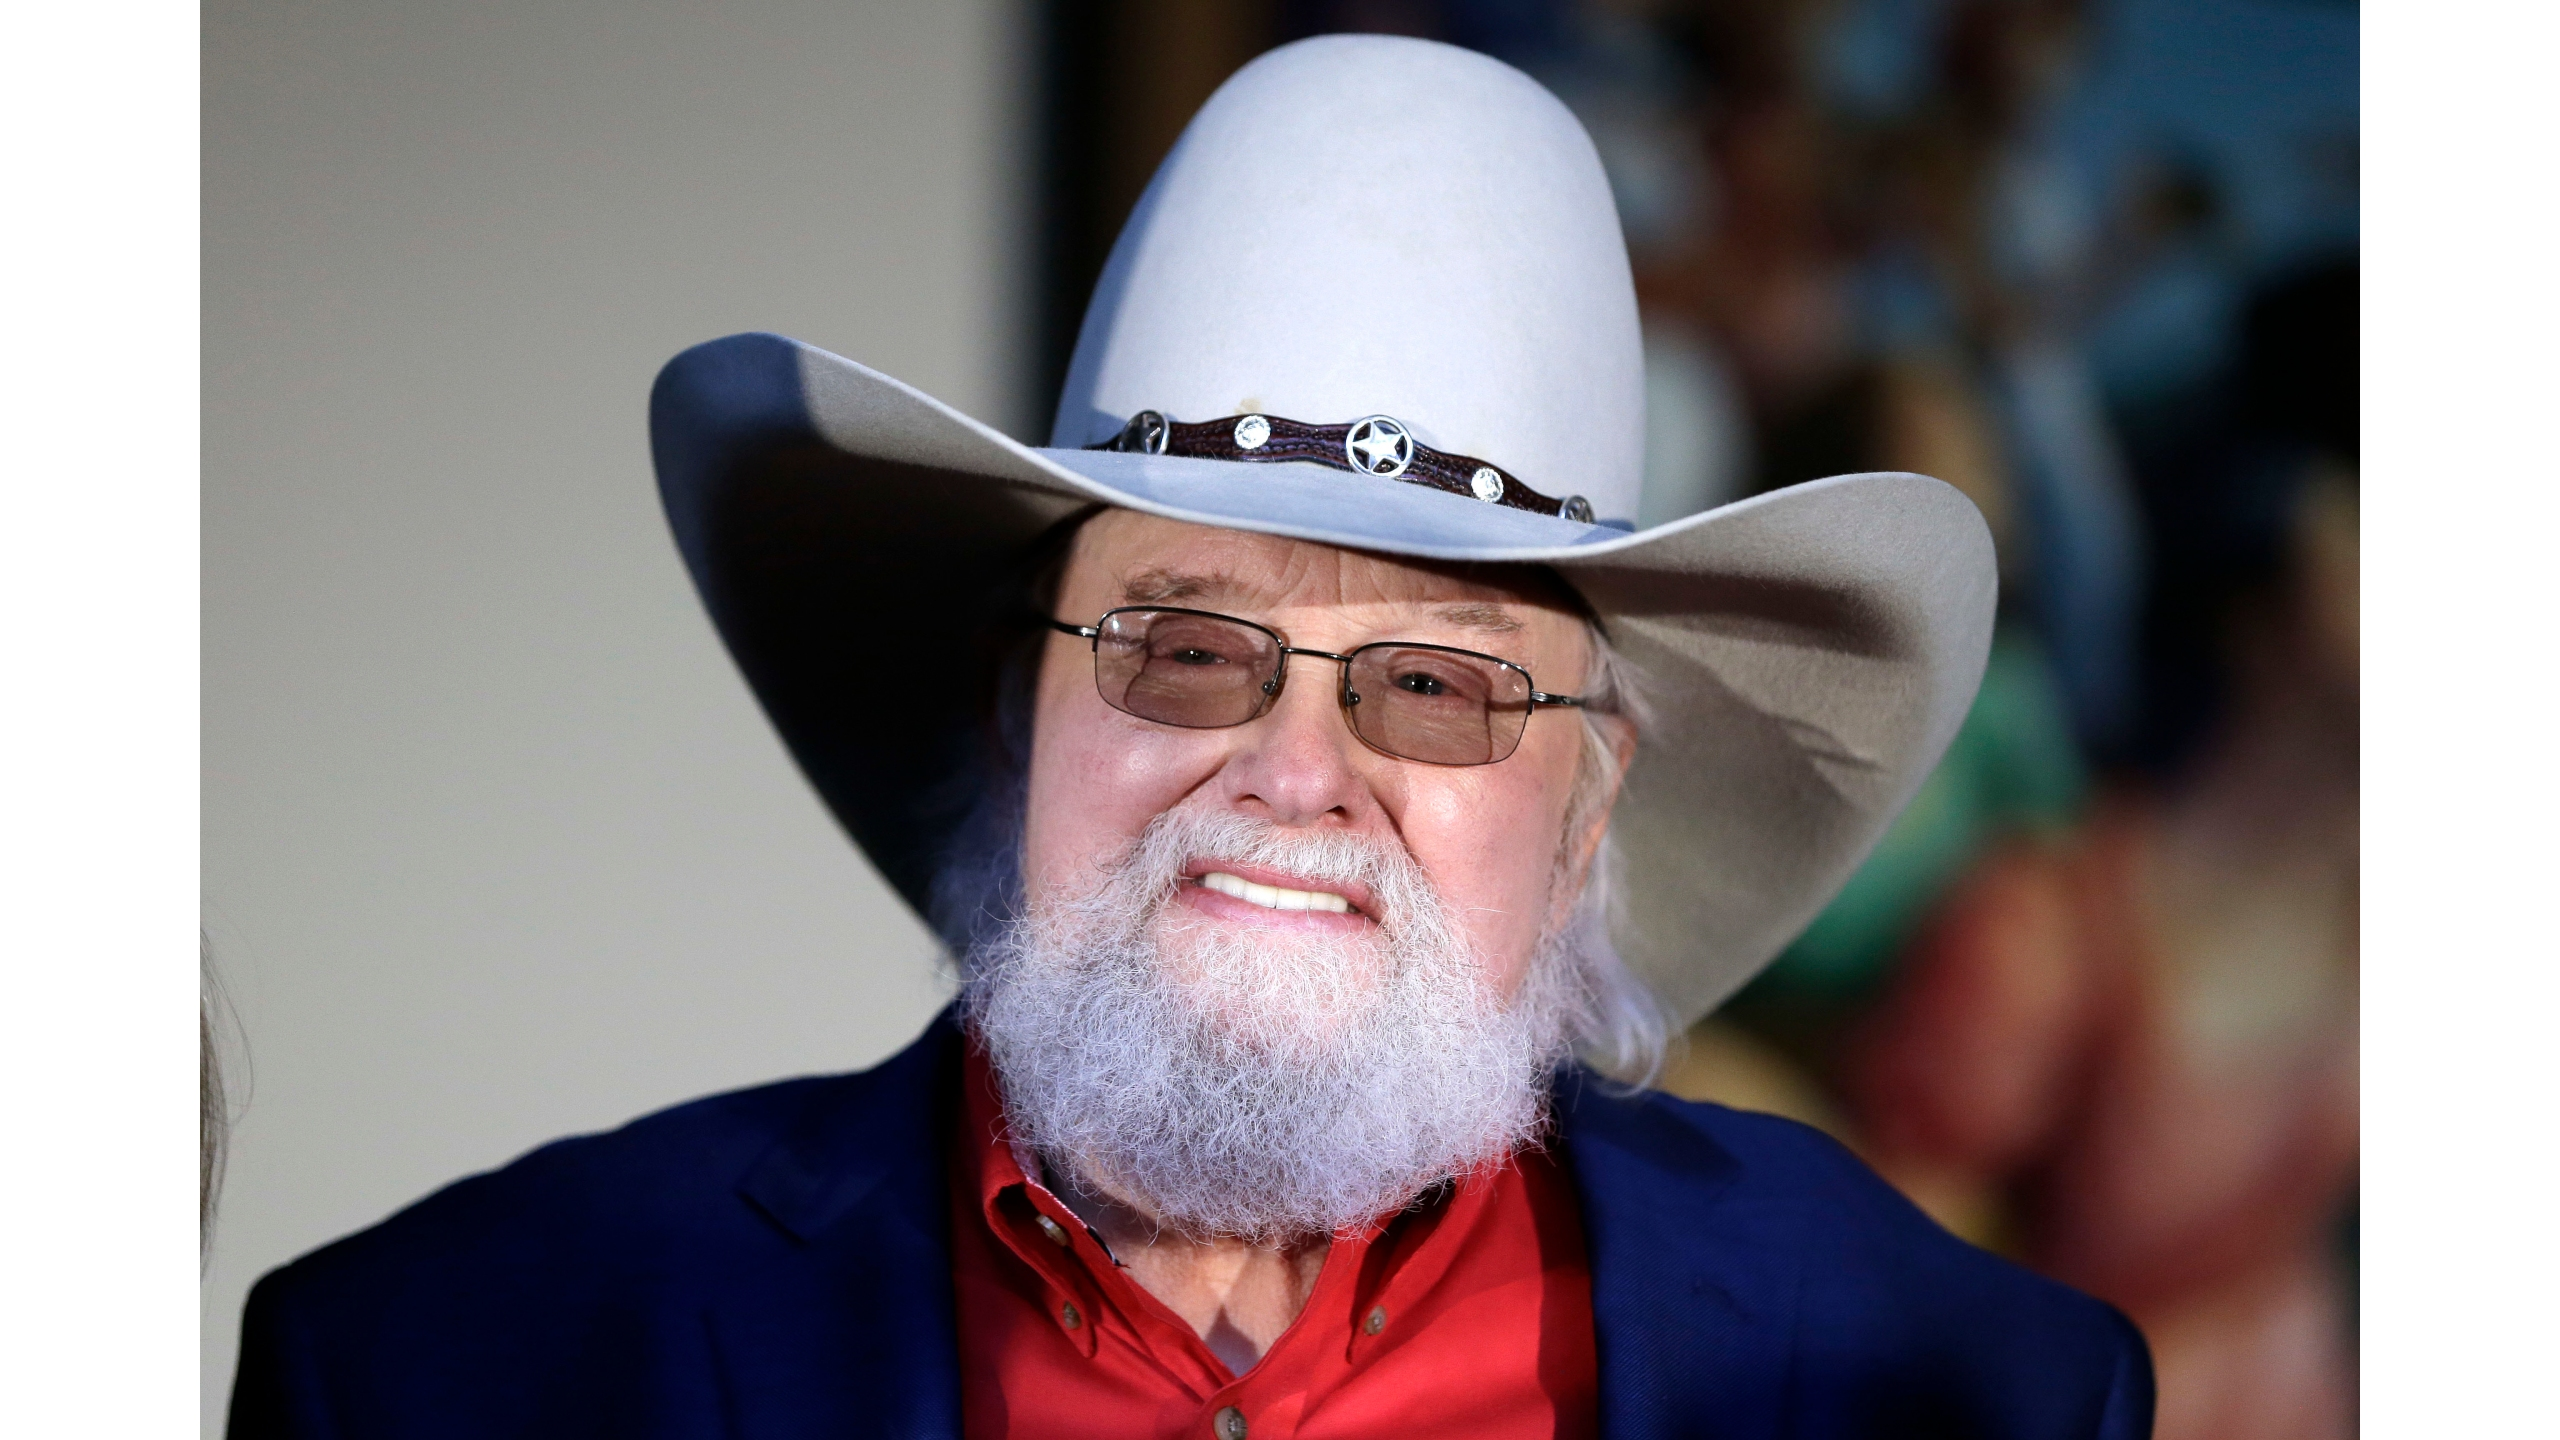 Fiddler Charlie Daniels attends a press conference announcing him as one of three Country Music Hall of Fame inductees Tuesday, March 29, 2016, in Nashville, Tenn. (AP Photo/Mark Humphrey)